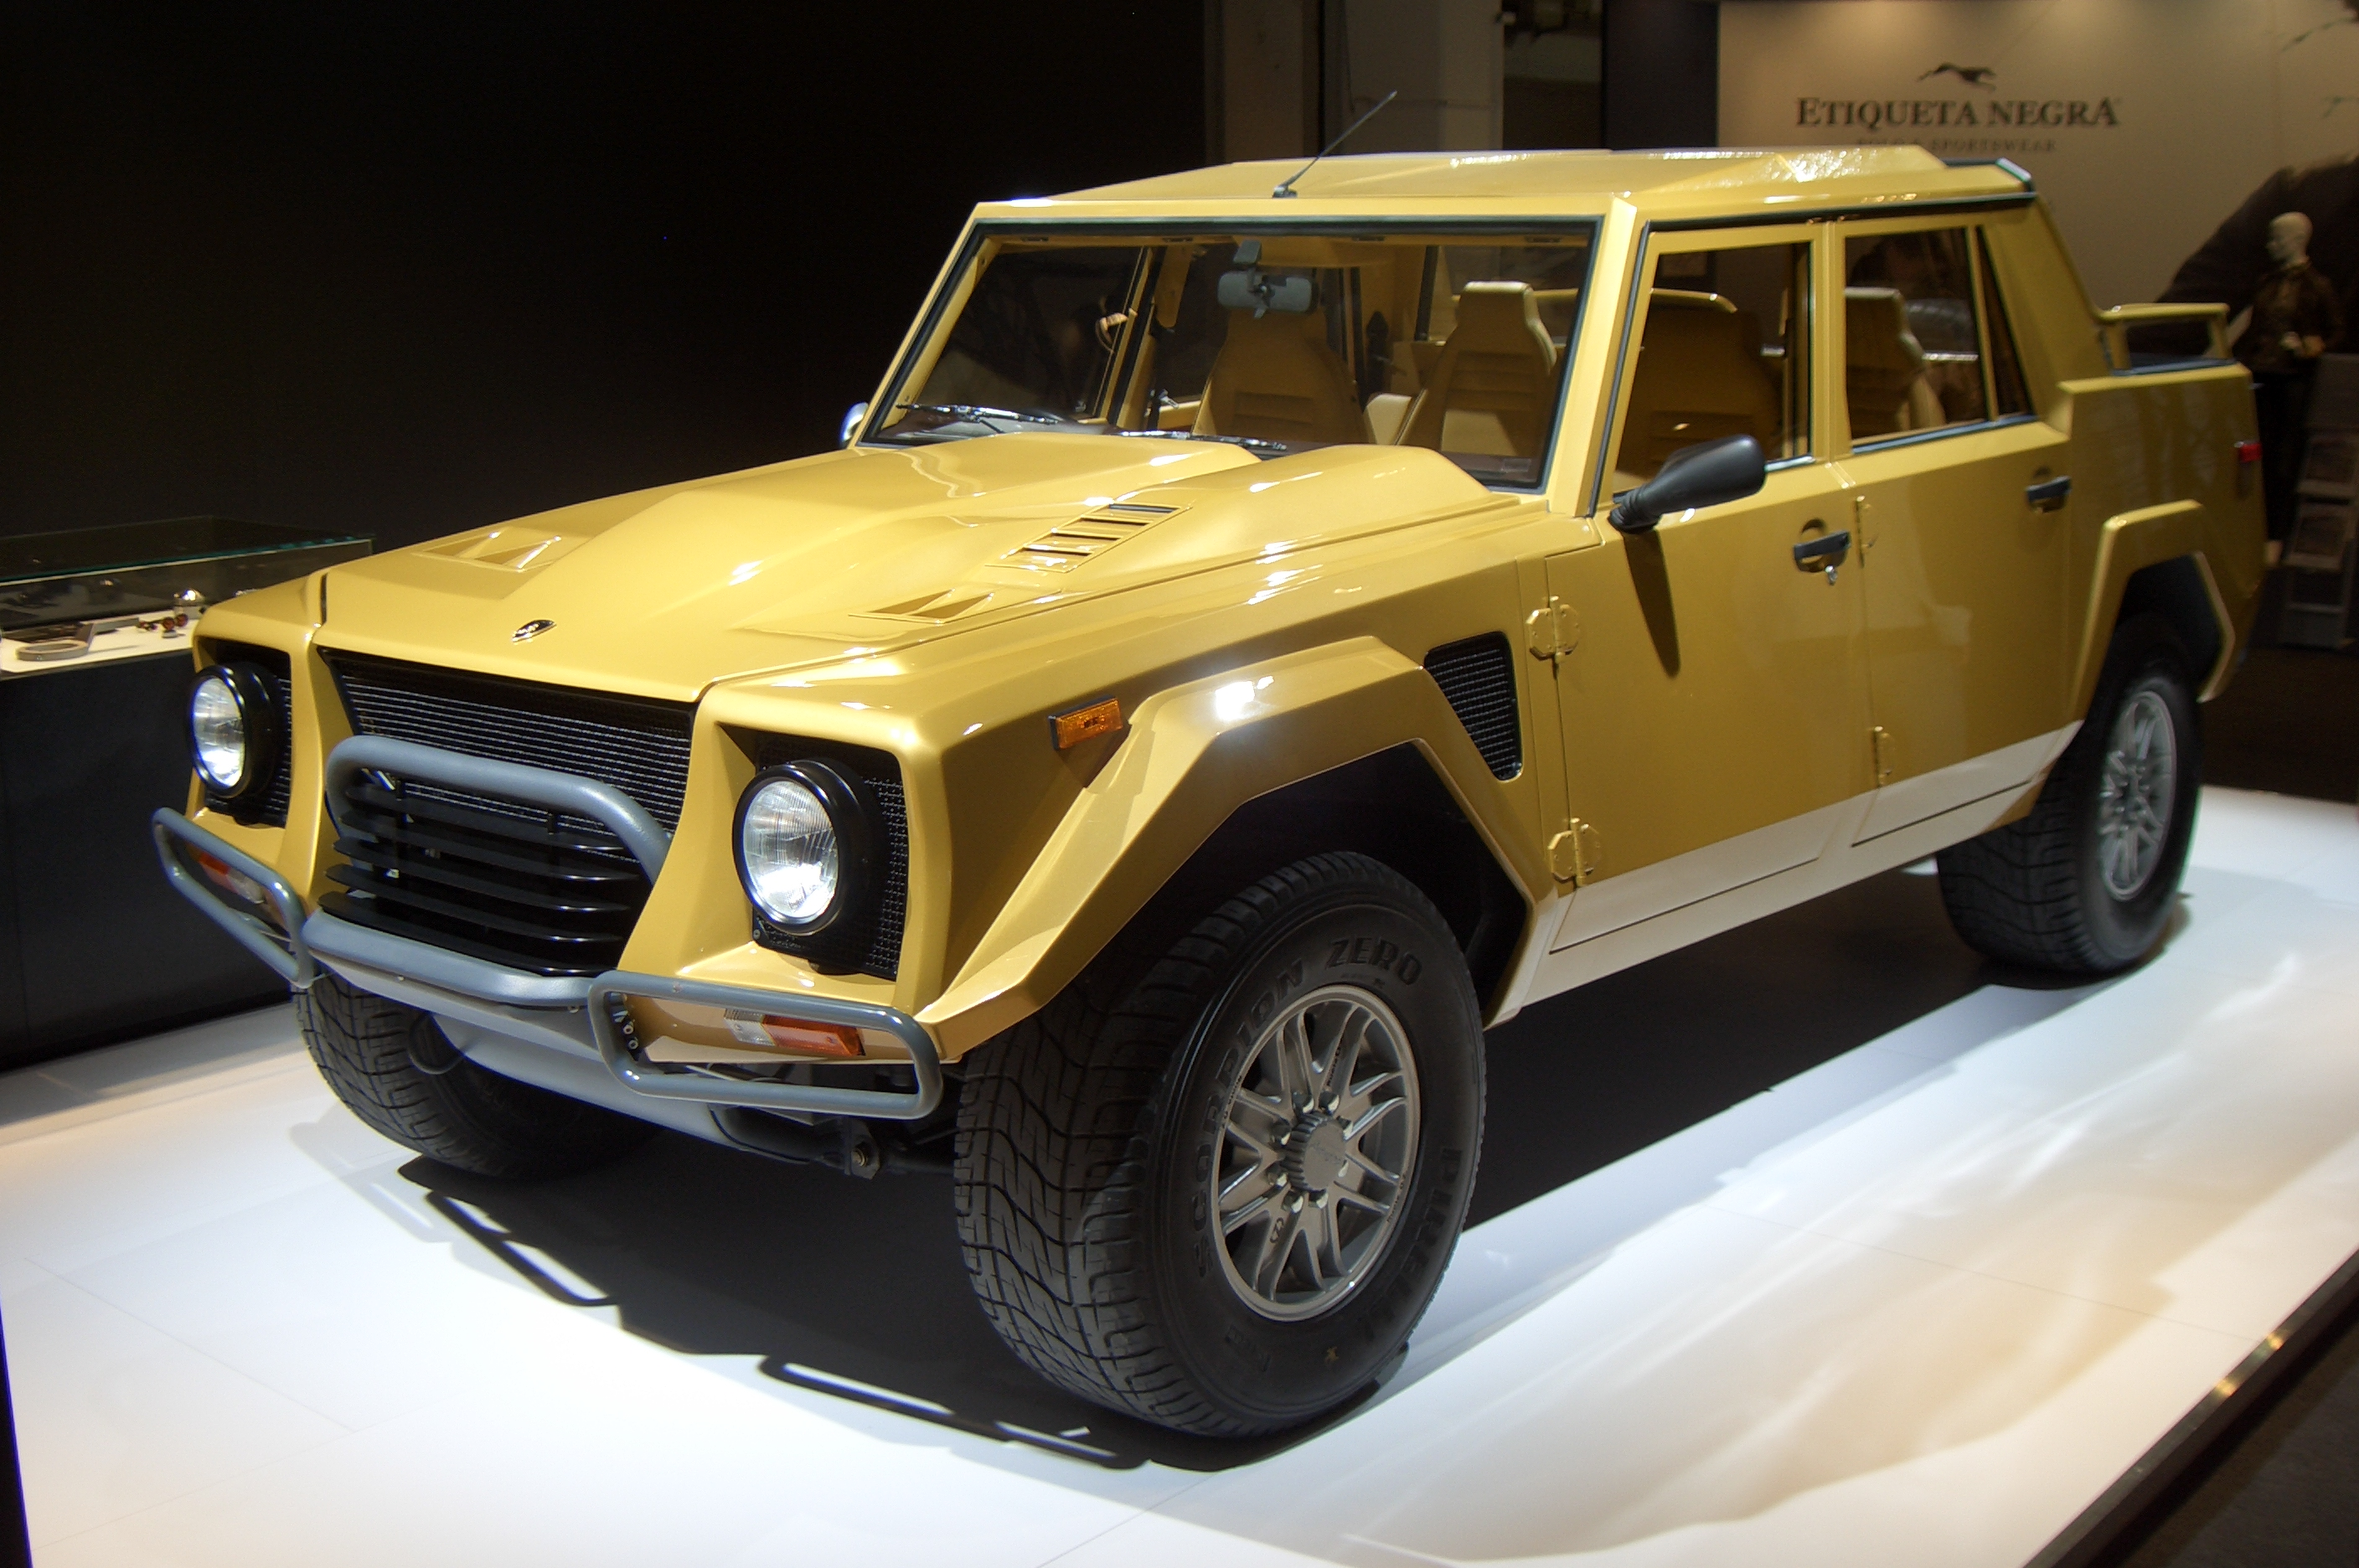 https://upload.wikimedia.org/wikipedia/commons/b/bc/Lamborghini_LM002_Gen1_1986-1992_frontleft_2012-03-22_A.jpg